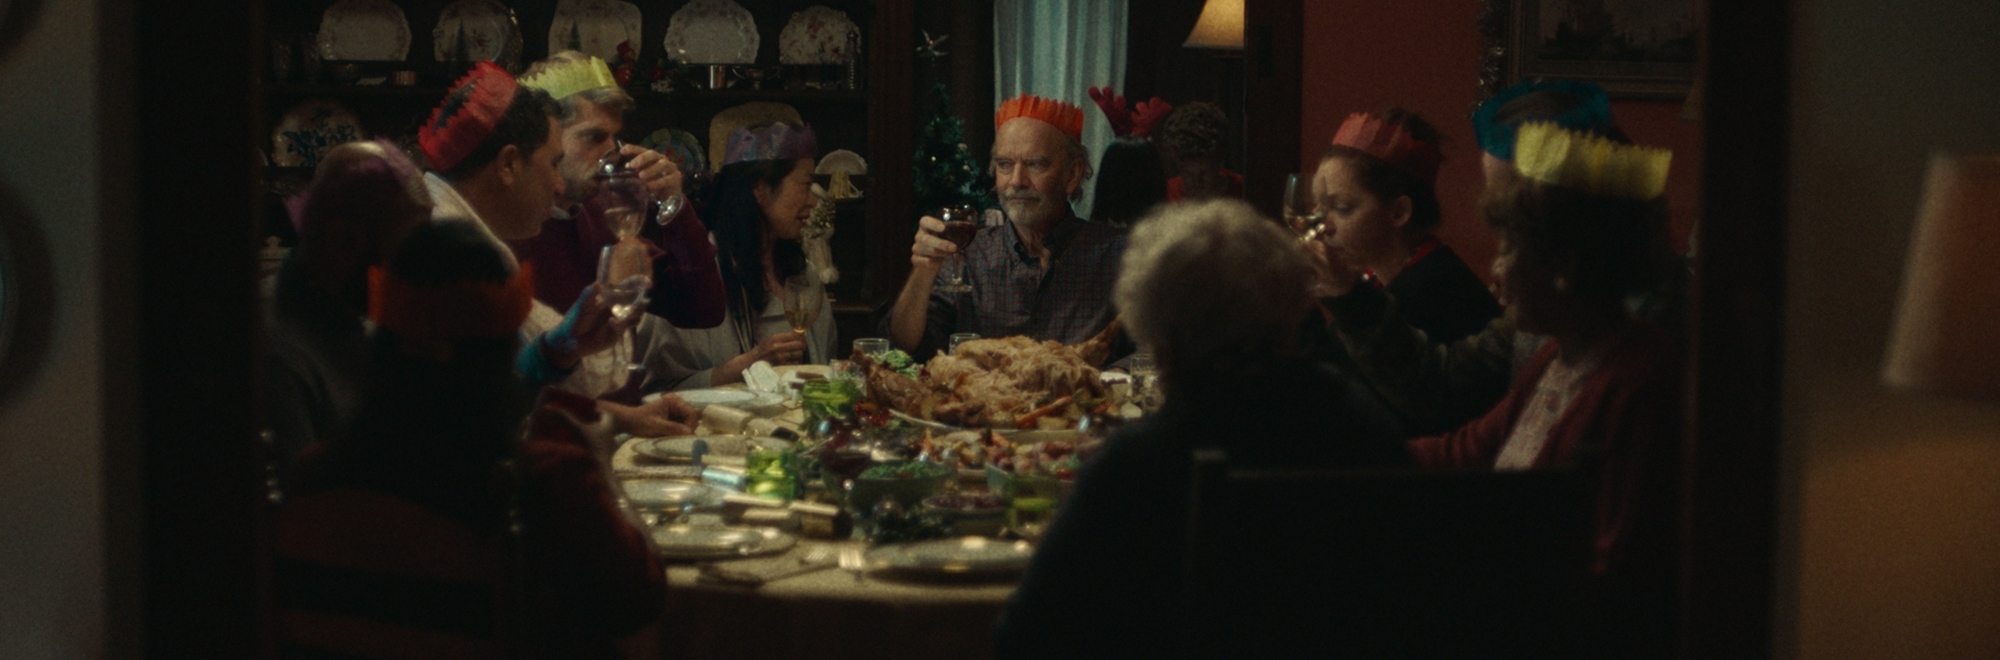 We wish you a Messy Christmas says Plenty in its new ad by AMV BBDO & Essity